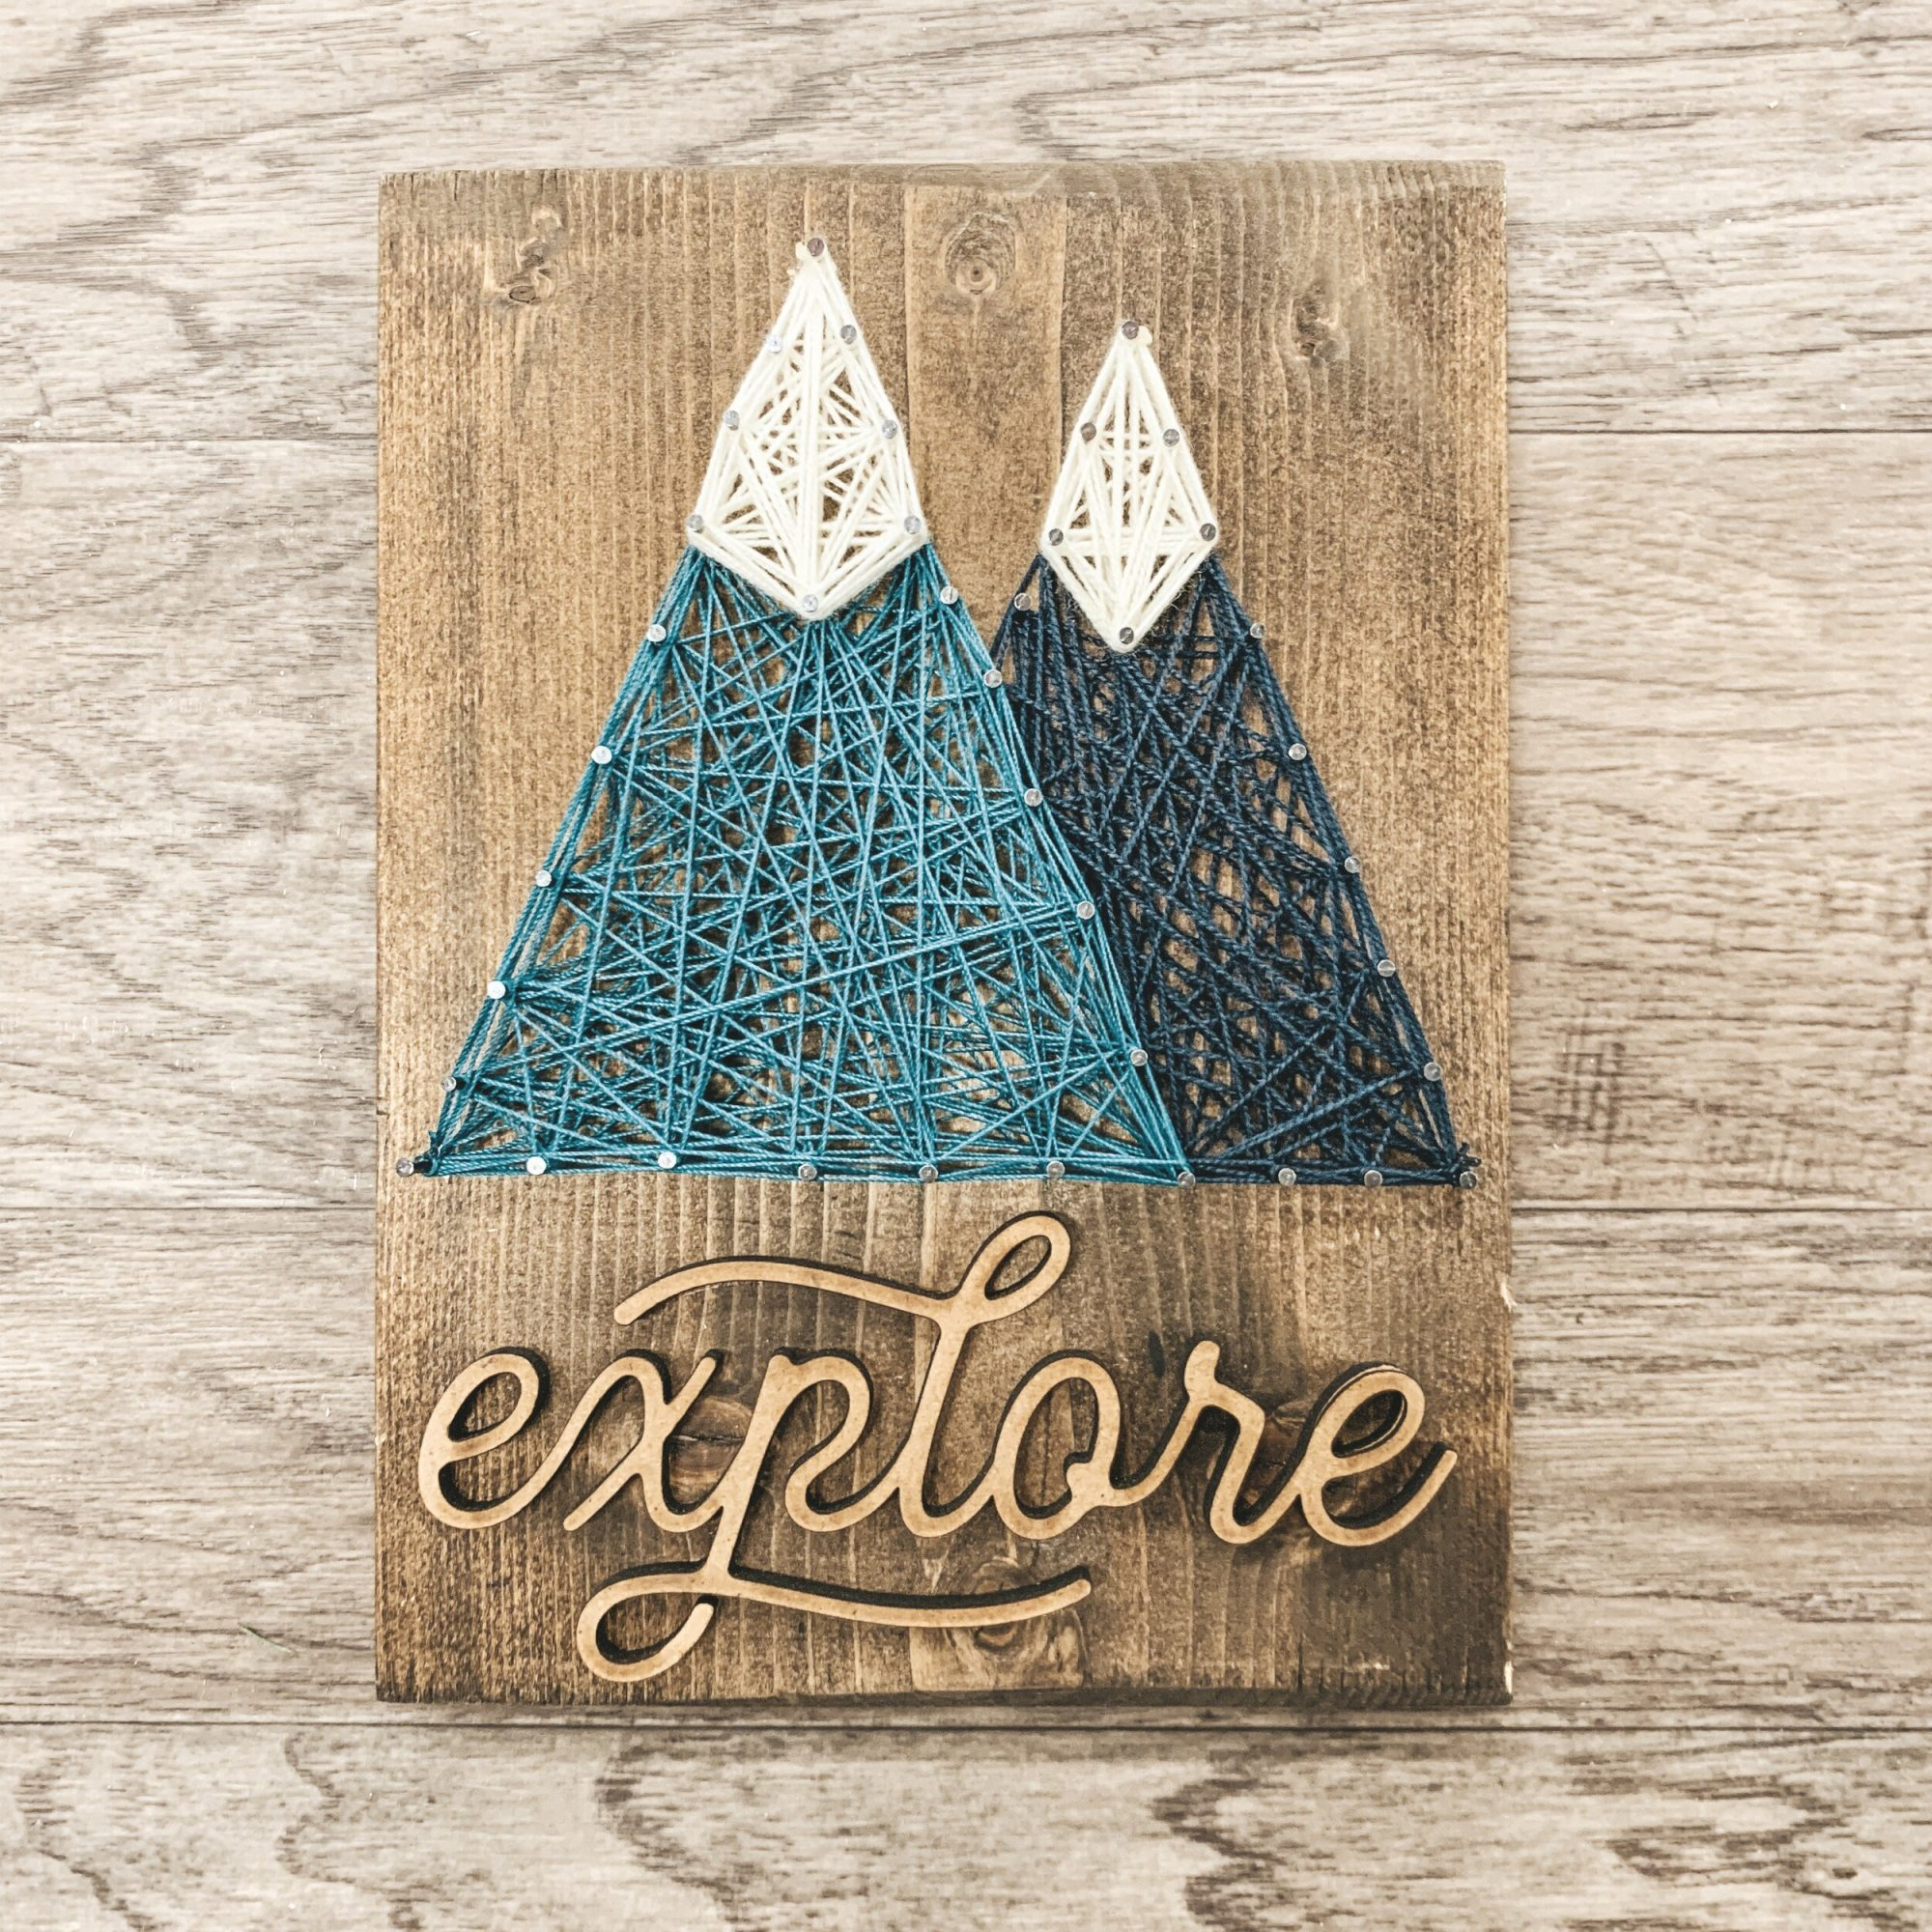 wood board with nails and string in a mountain pattern